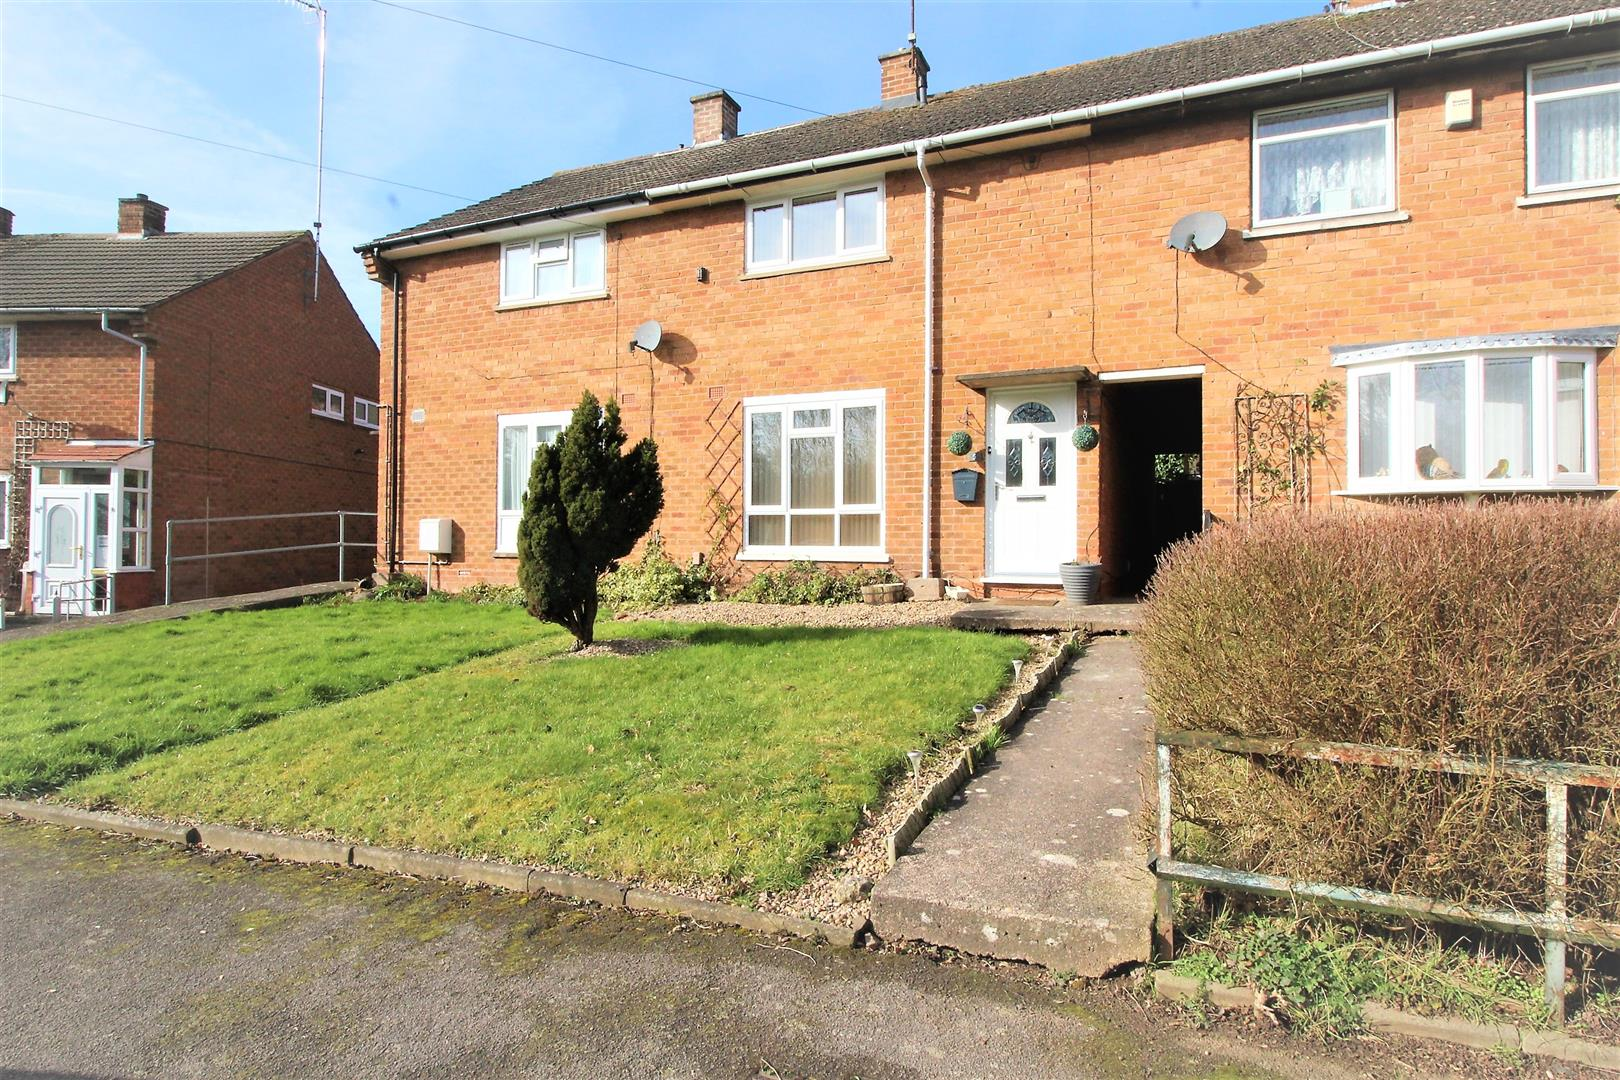 2 Bedrooms Terraced House for sale in Wharrington Close, Greenlands, Redditch